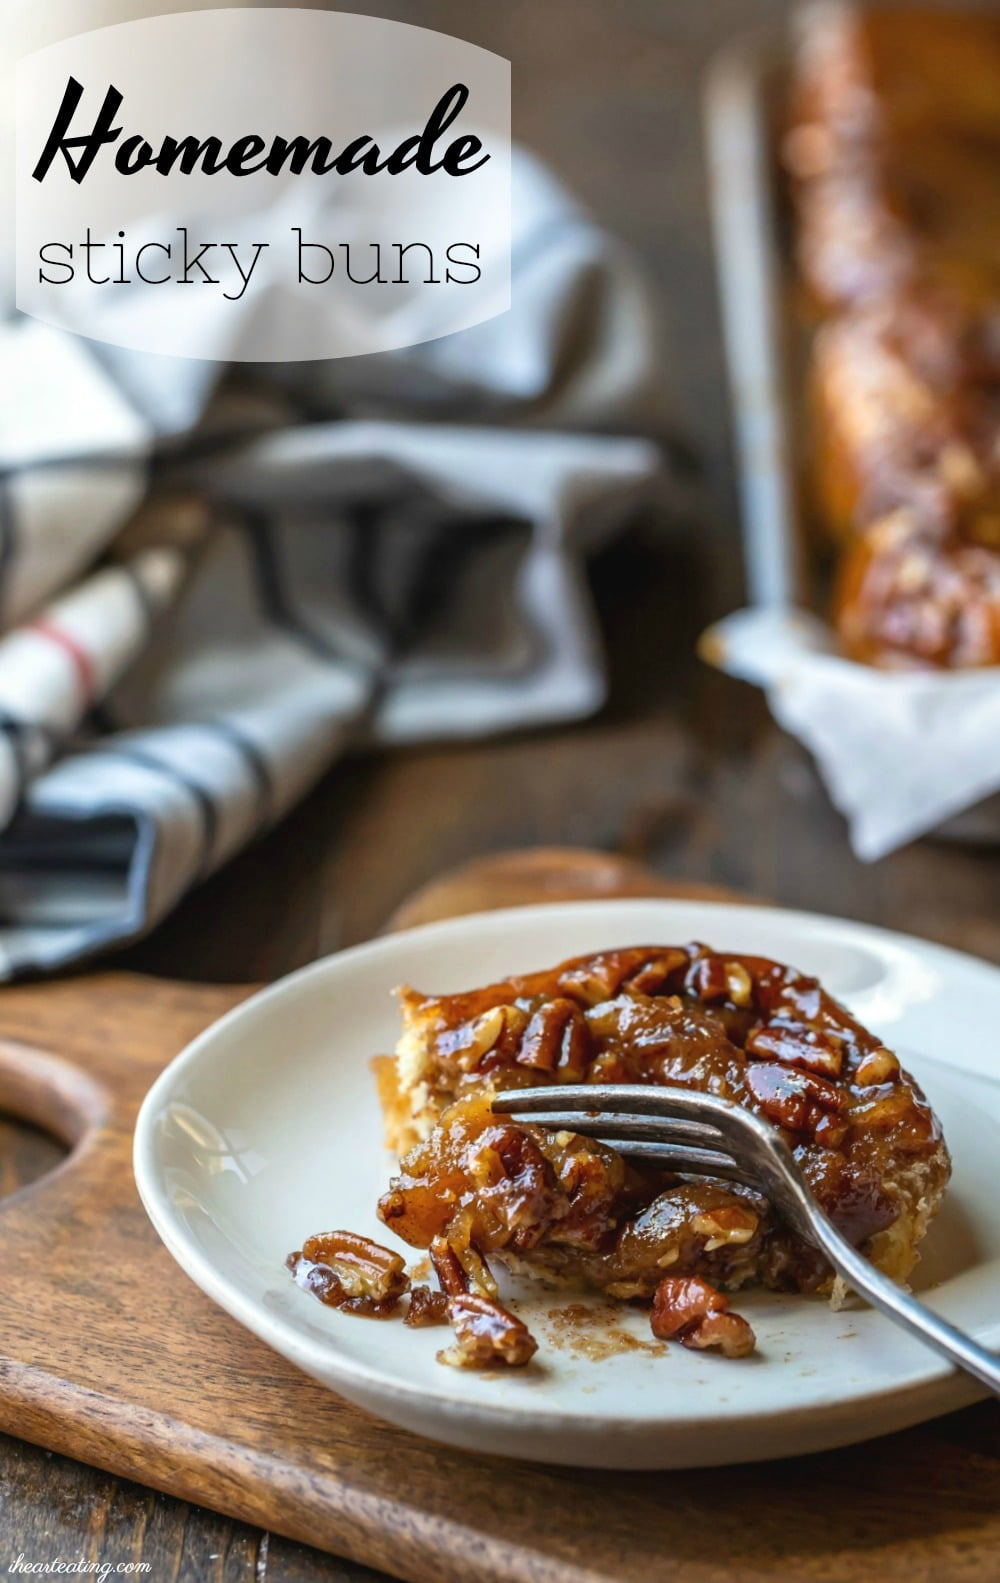 Easy homemade sticky buns start with a simple homemade dough and are topped with a rich, sticky nut topping. #stickybun #breakfast #dessert #recipe #yeast #holiday #Christmas #Thanksgiving #homemade #ihearteating